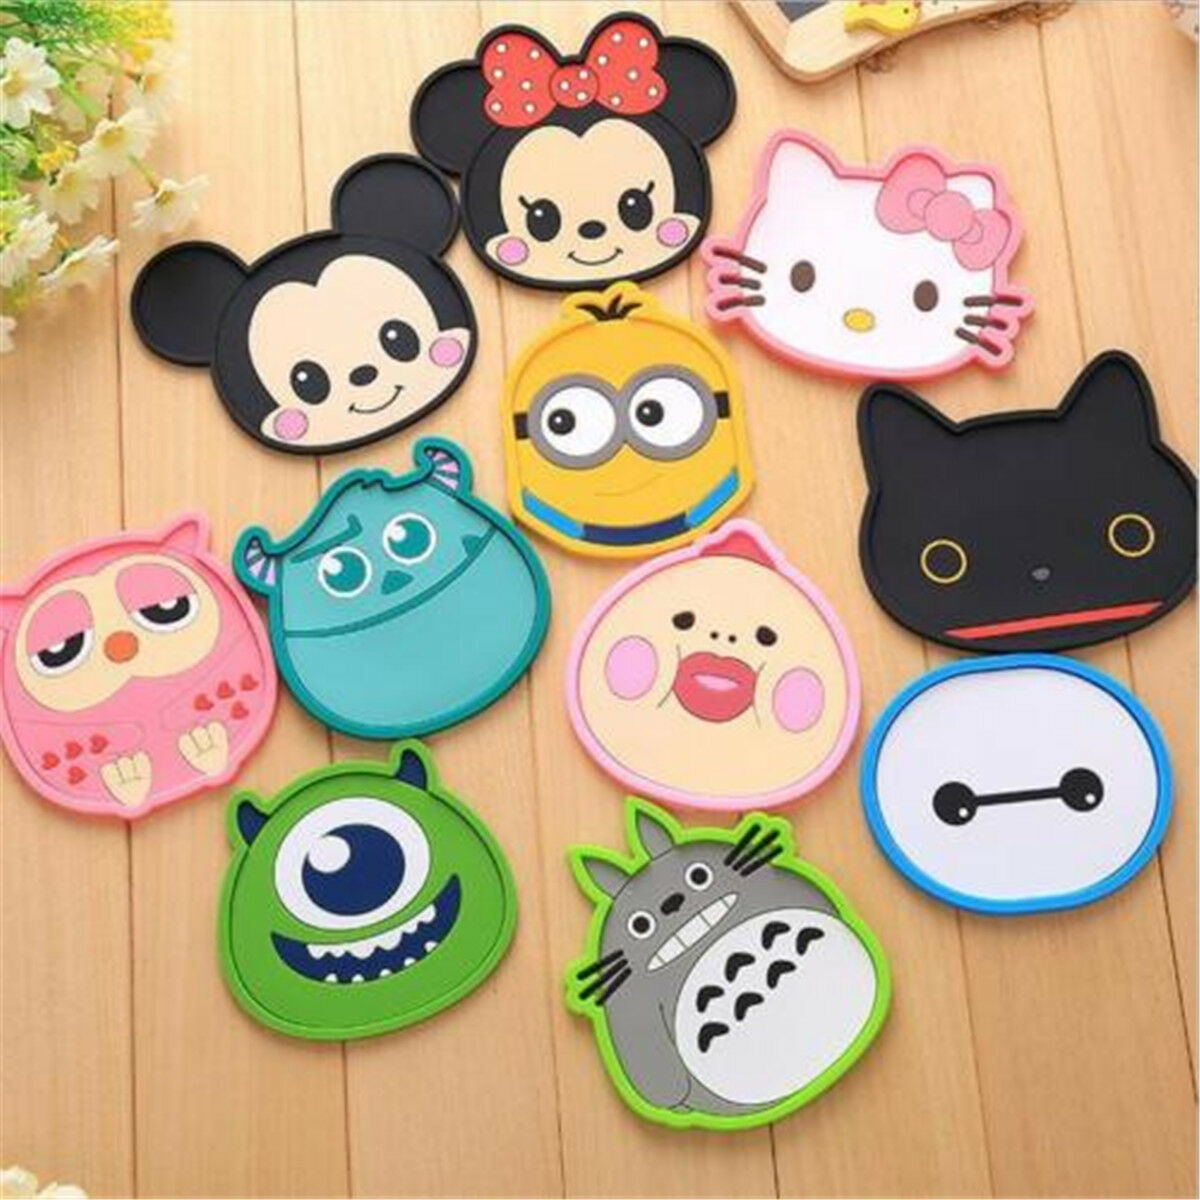 1Pcs Cartoon Coasters Silicone Placemat Cushion Mug Tableware Cup Tea Pad Mat